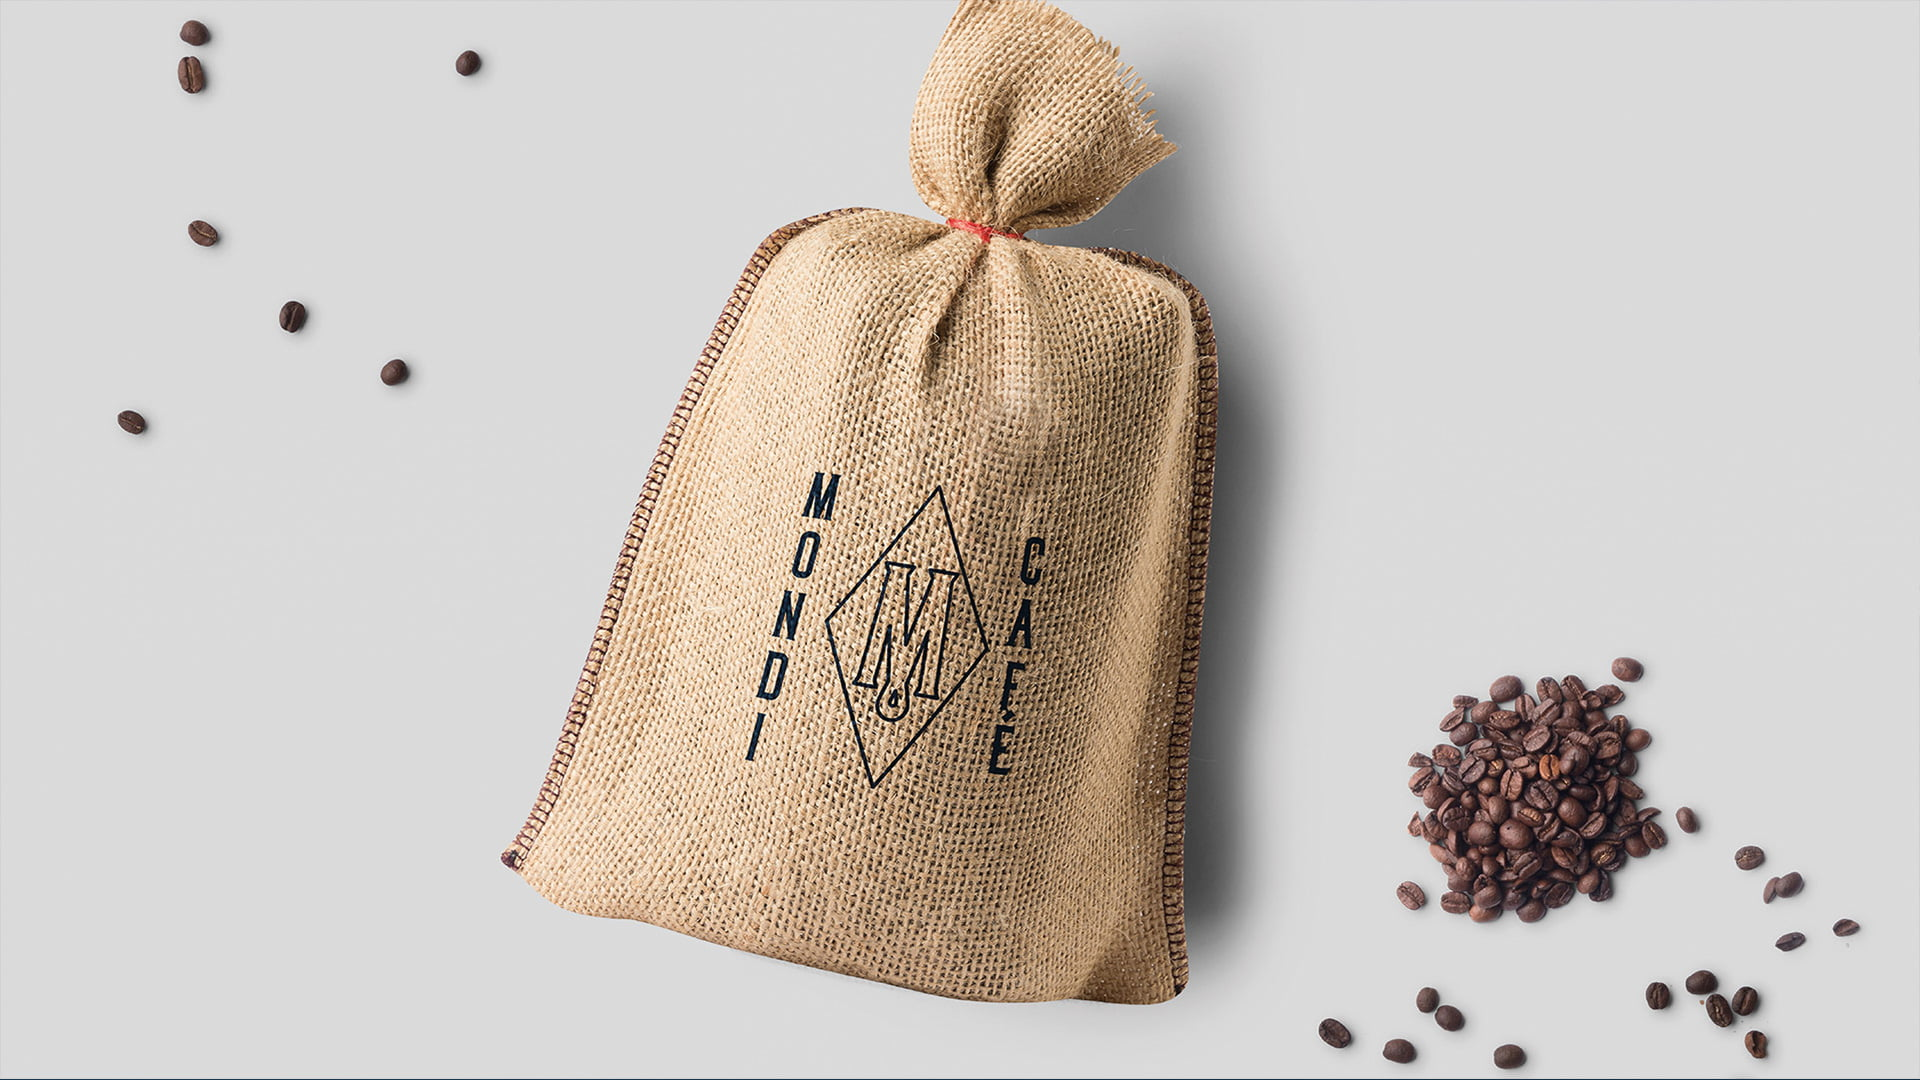 Vaengad packaging design Mondi café